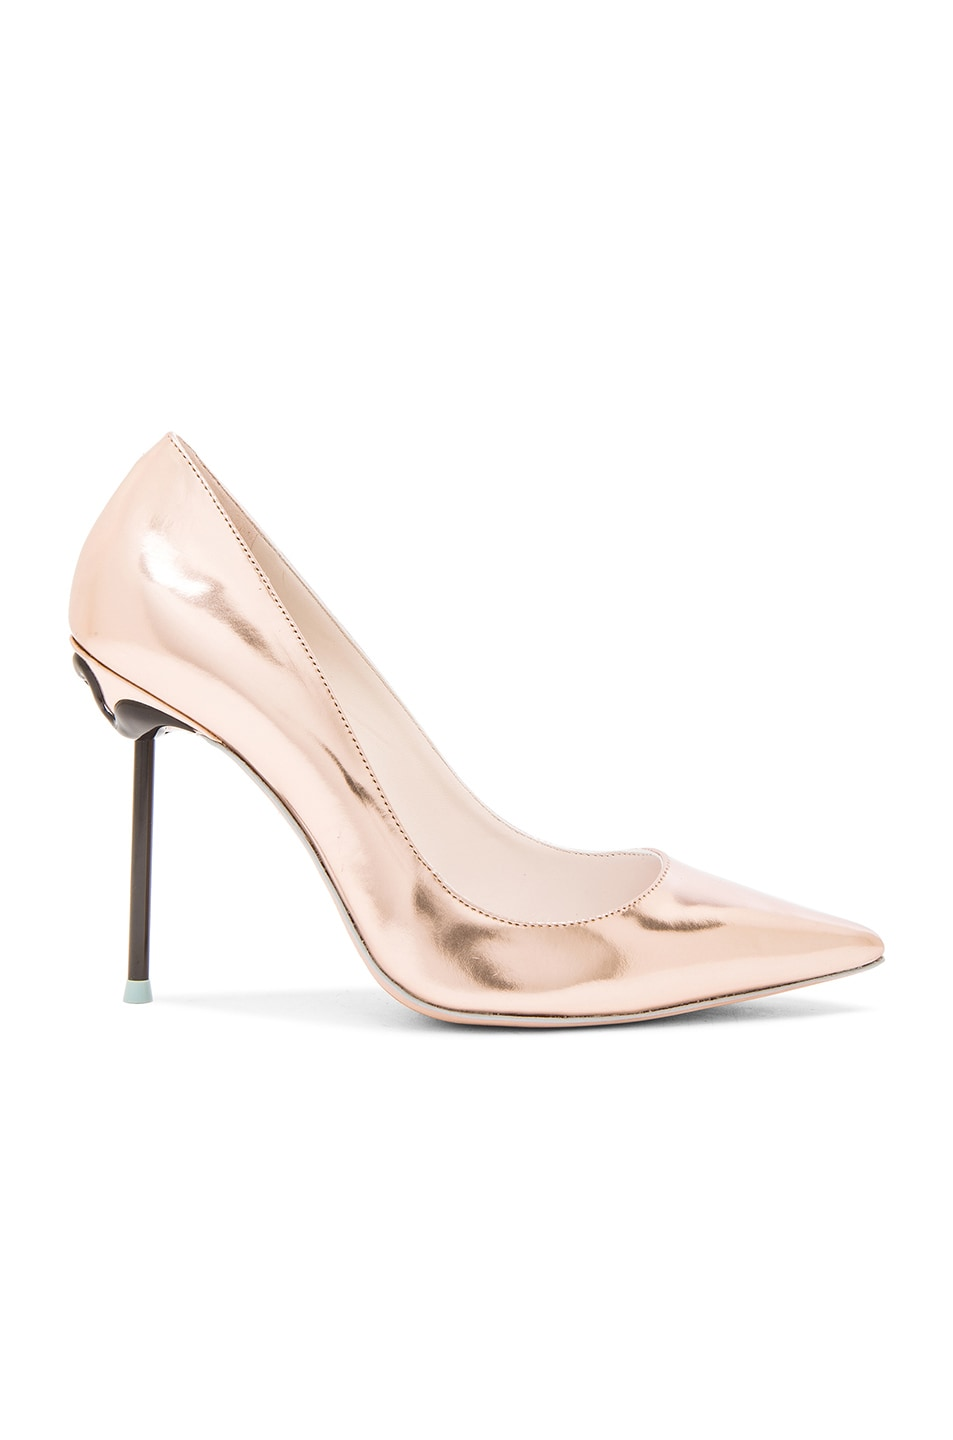 Image 1 of Sophia Webster Coco Flamingo Leather Heels in Rose Gold